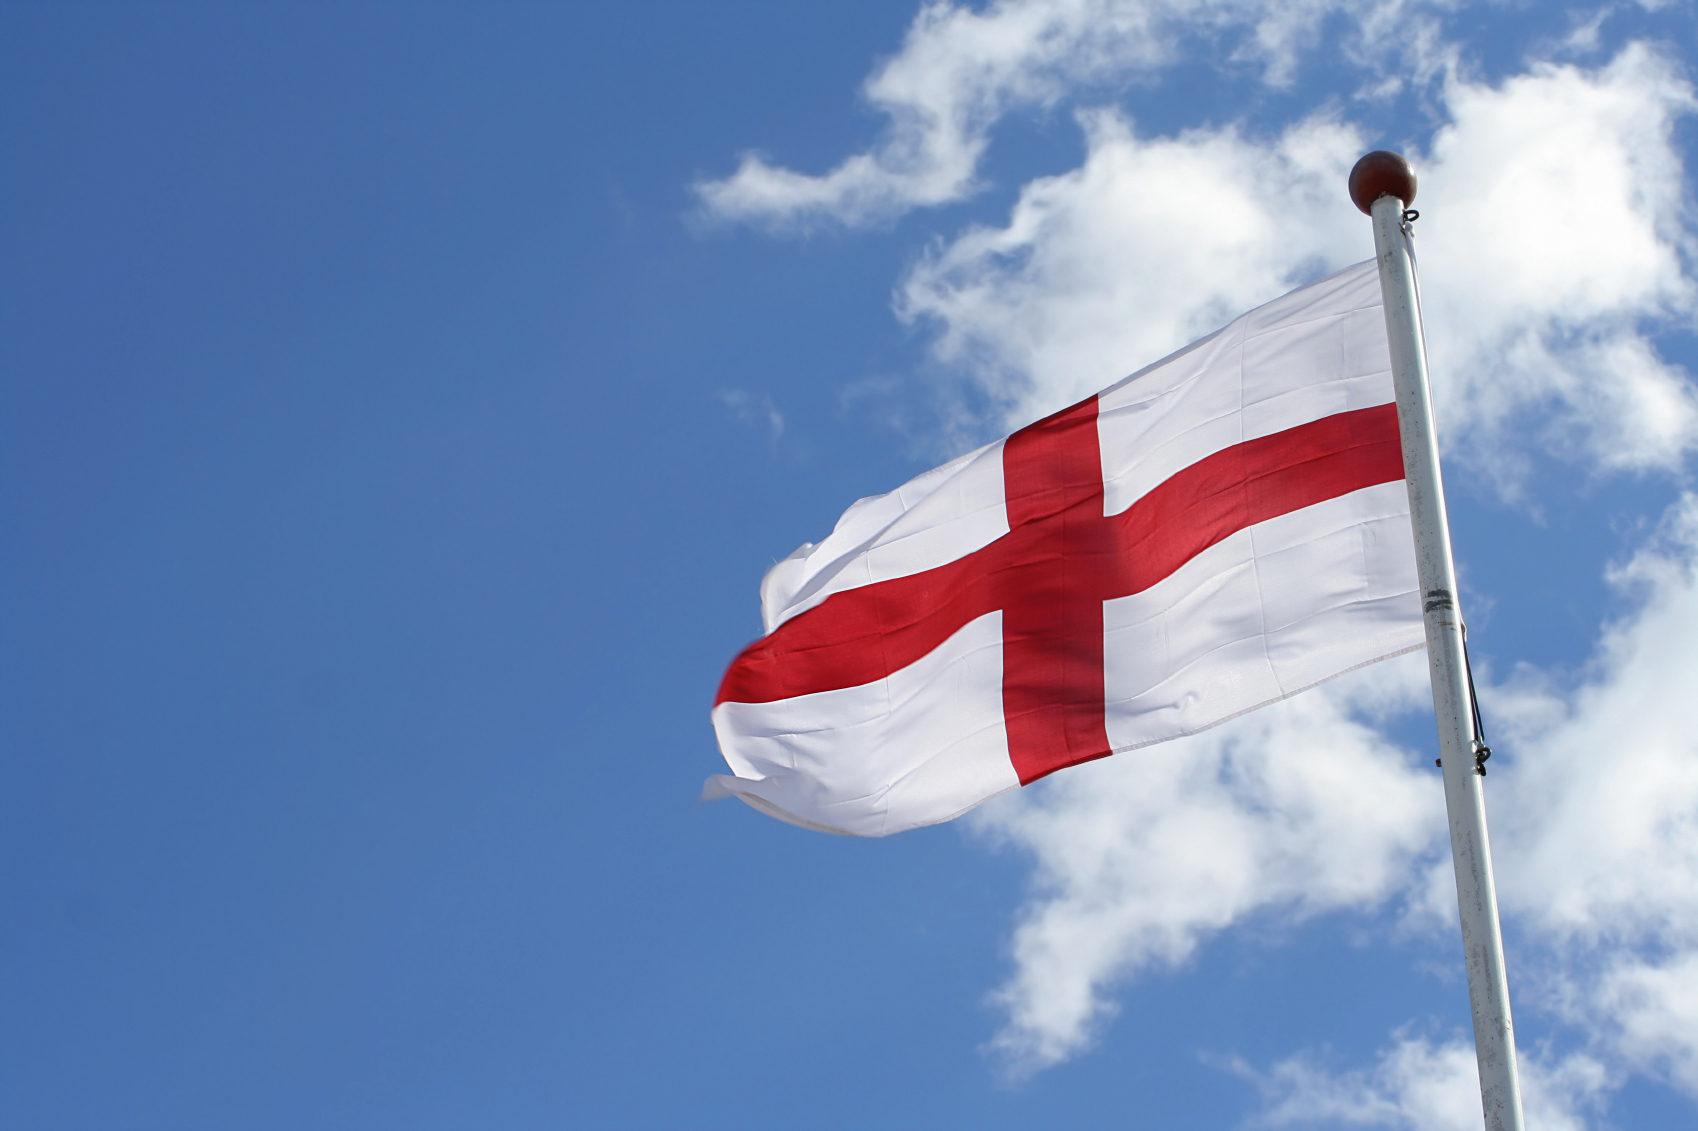 The St George Cross Flag